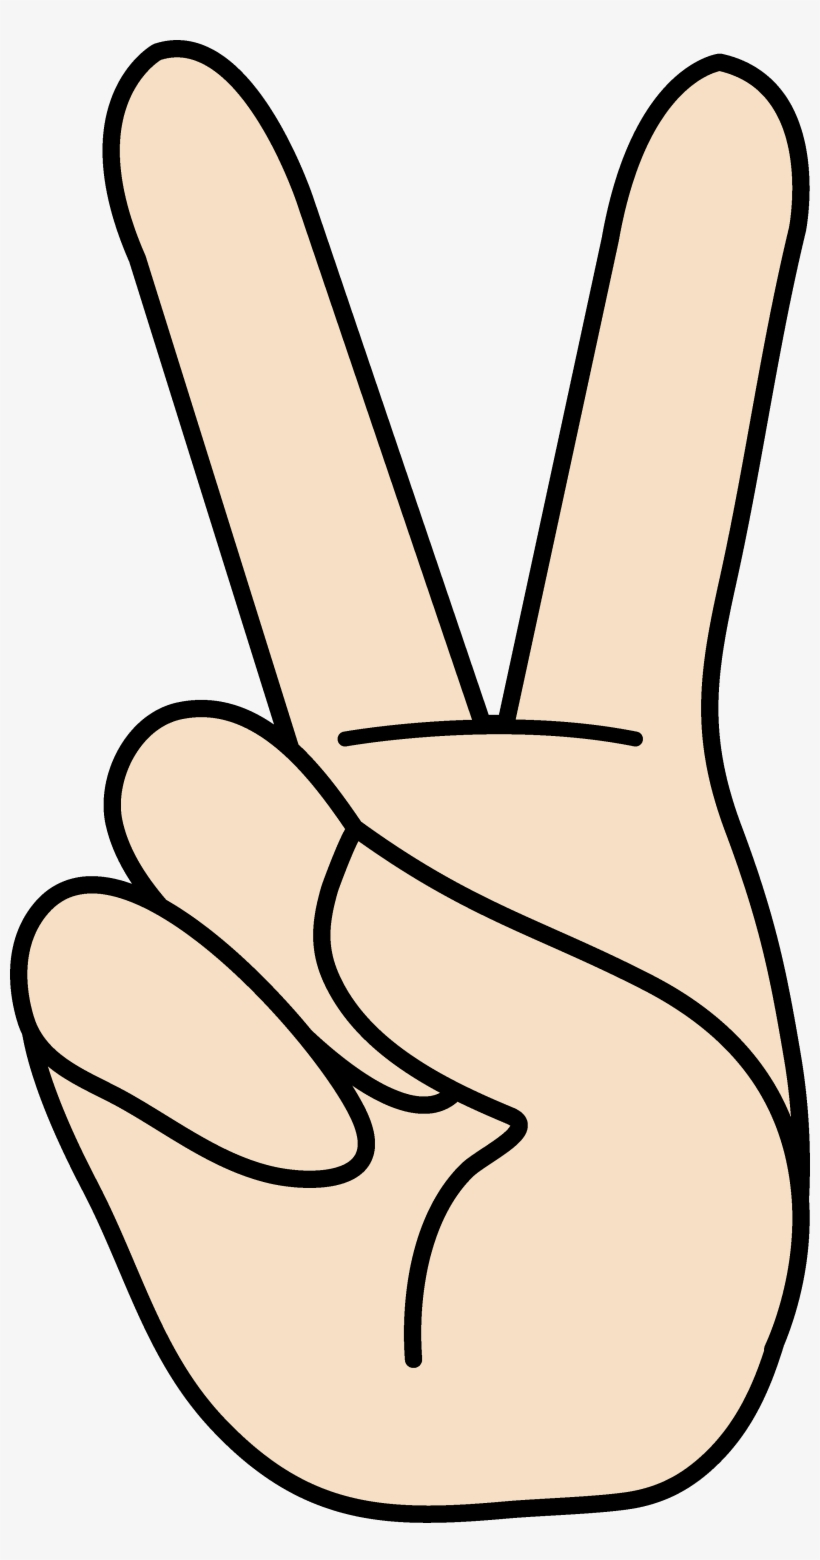 2 finger hand signal clipart clipart images gallery for free.